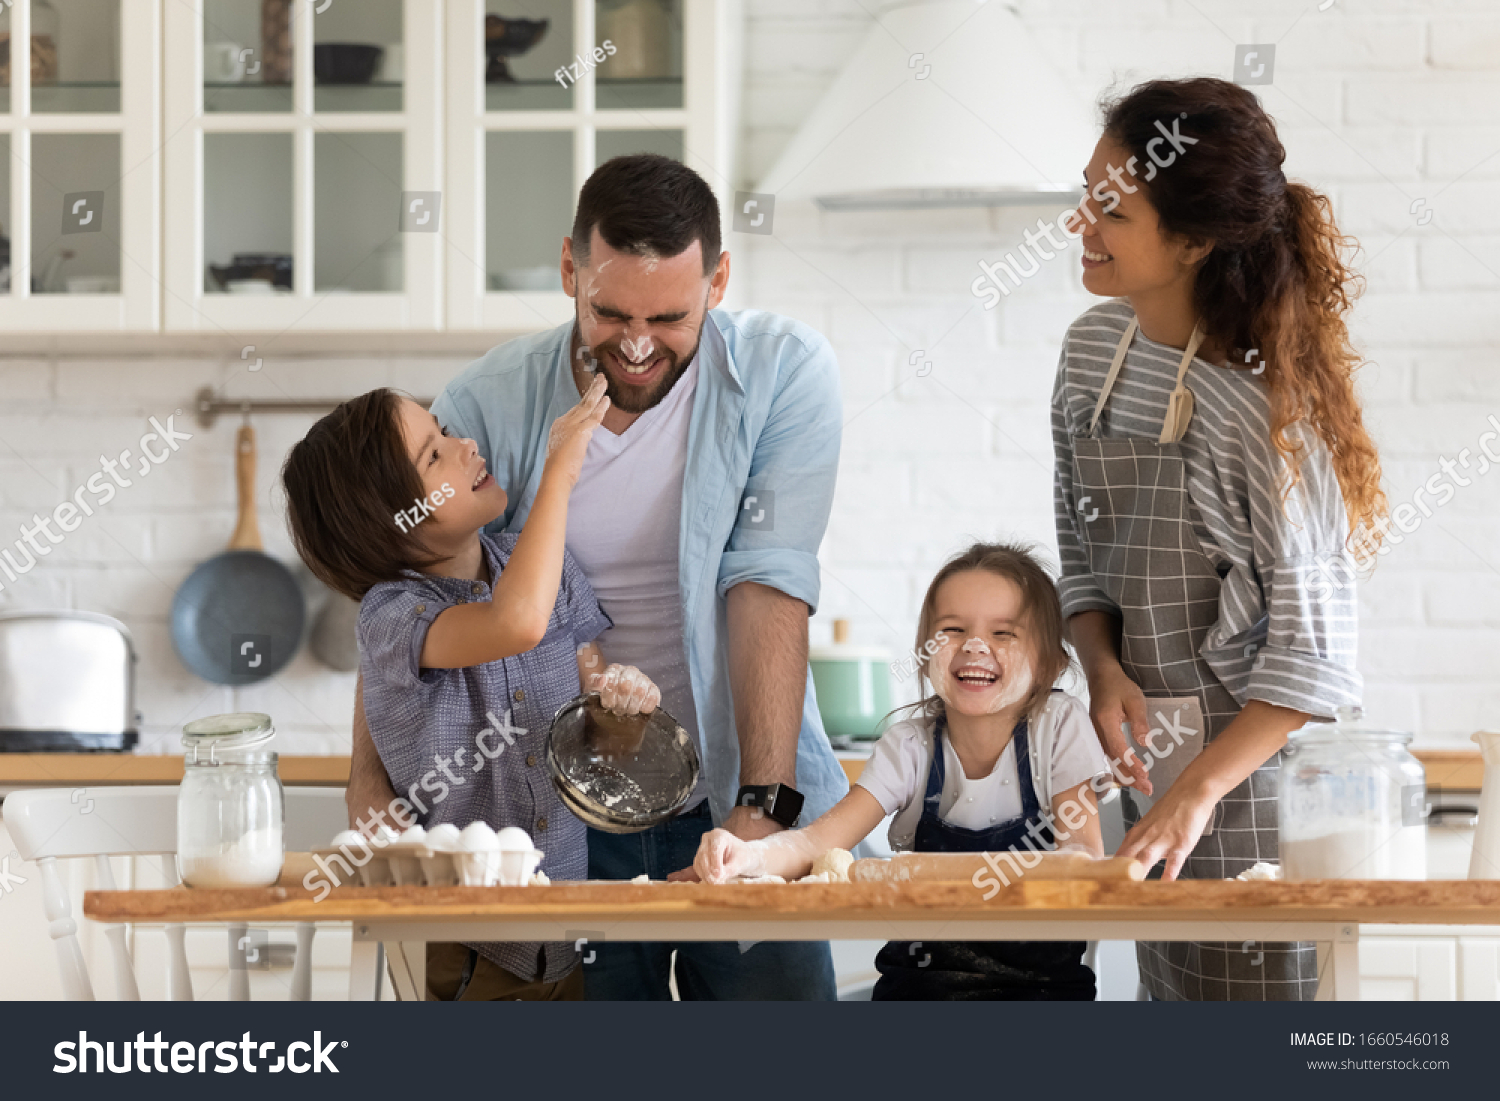 Overjoyed young family with little preschooler kids have fun cooking baking pastry or pie at home together, happy smiling parents enjoy weekend play with small children doing bakery cooking in kitchen #1660546018